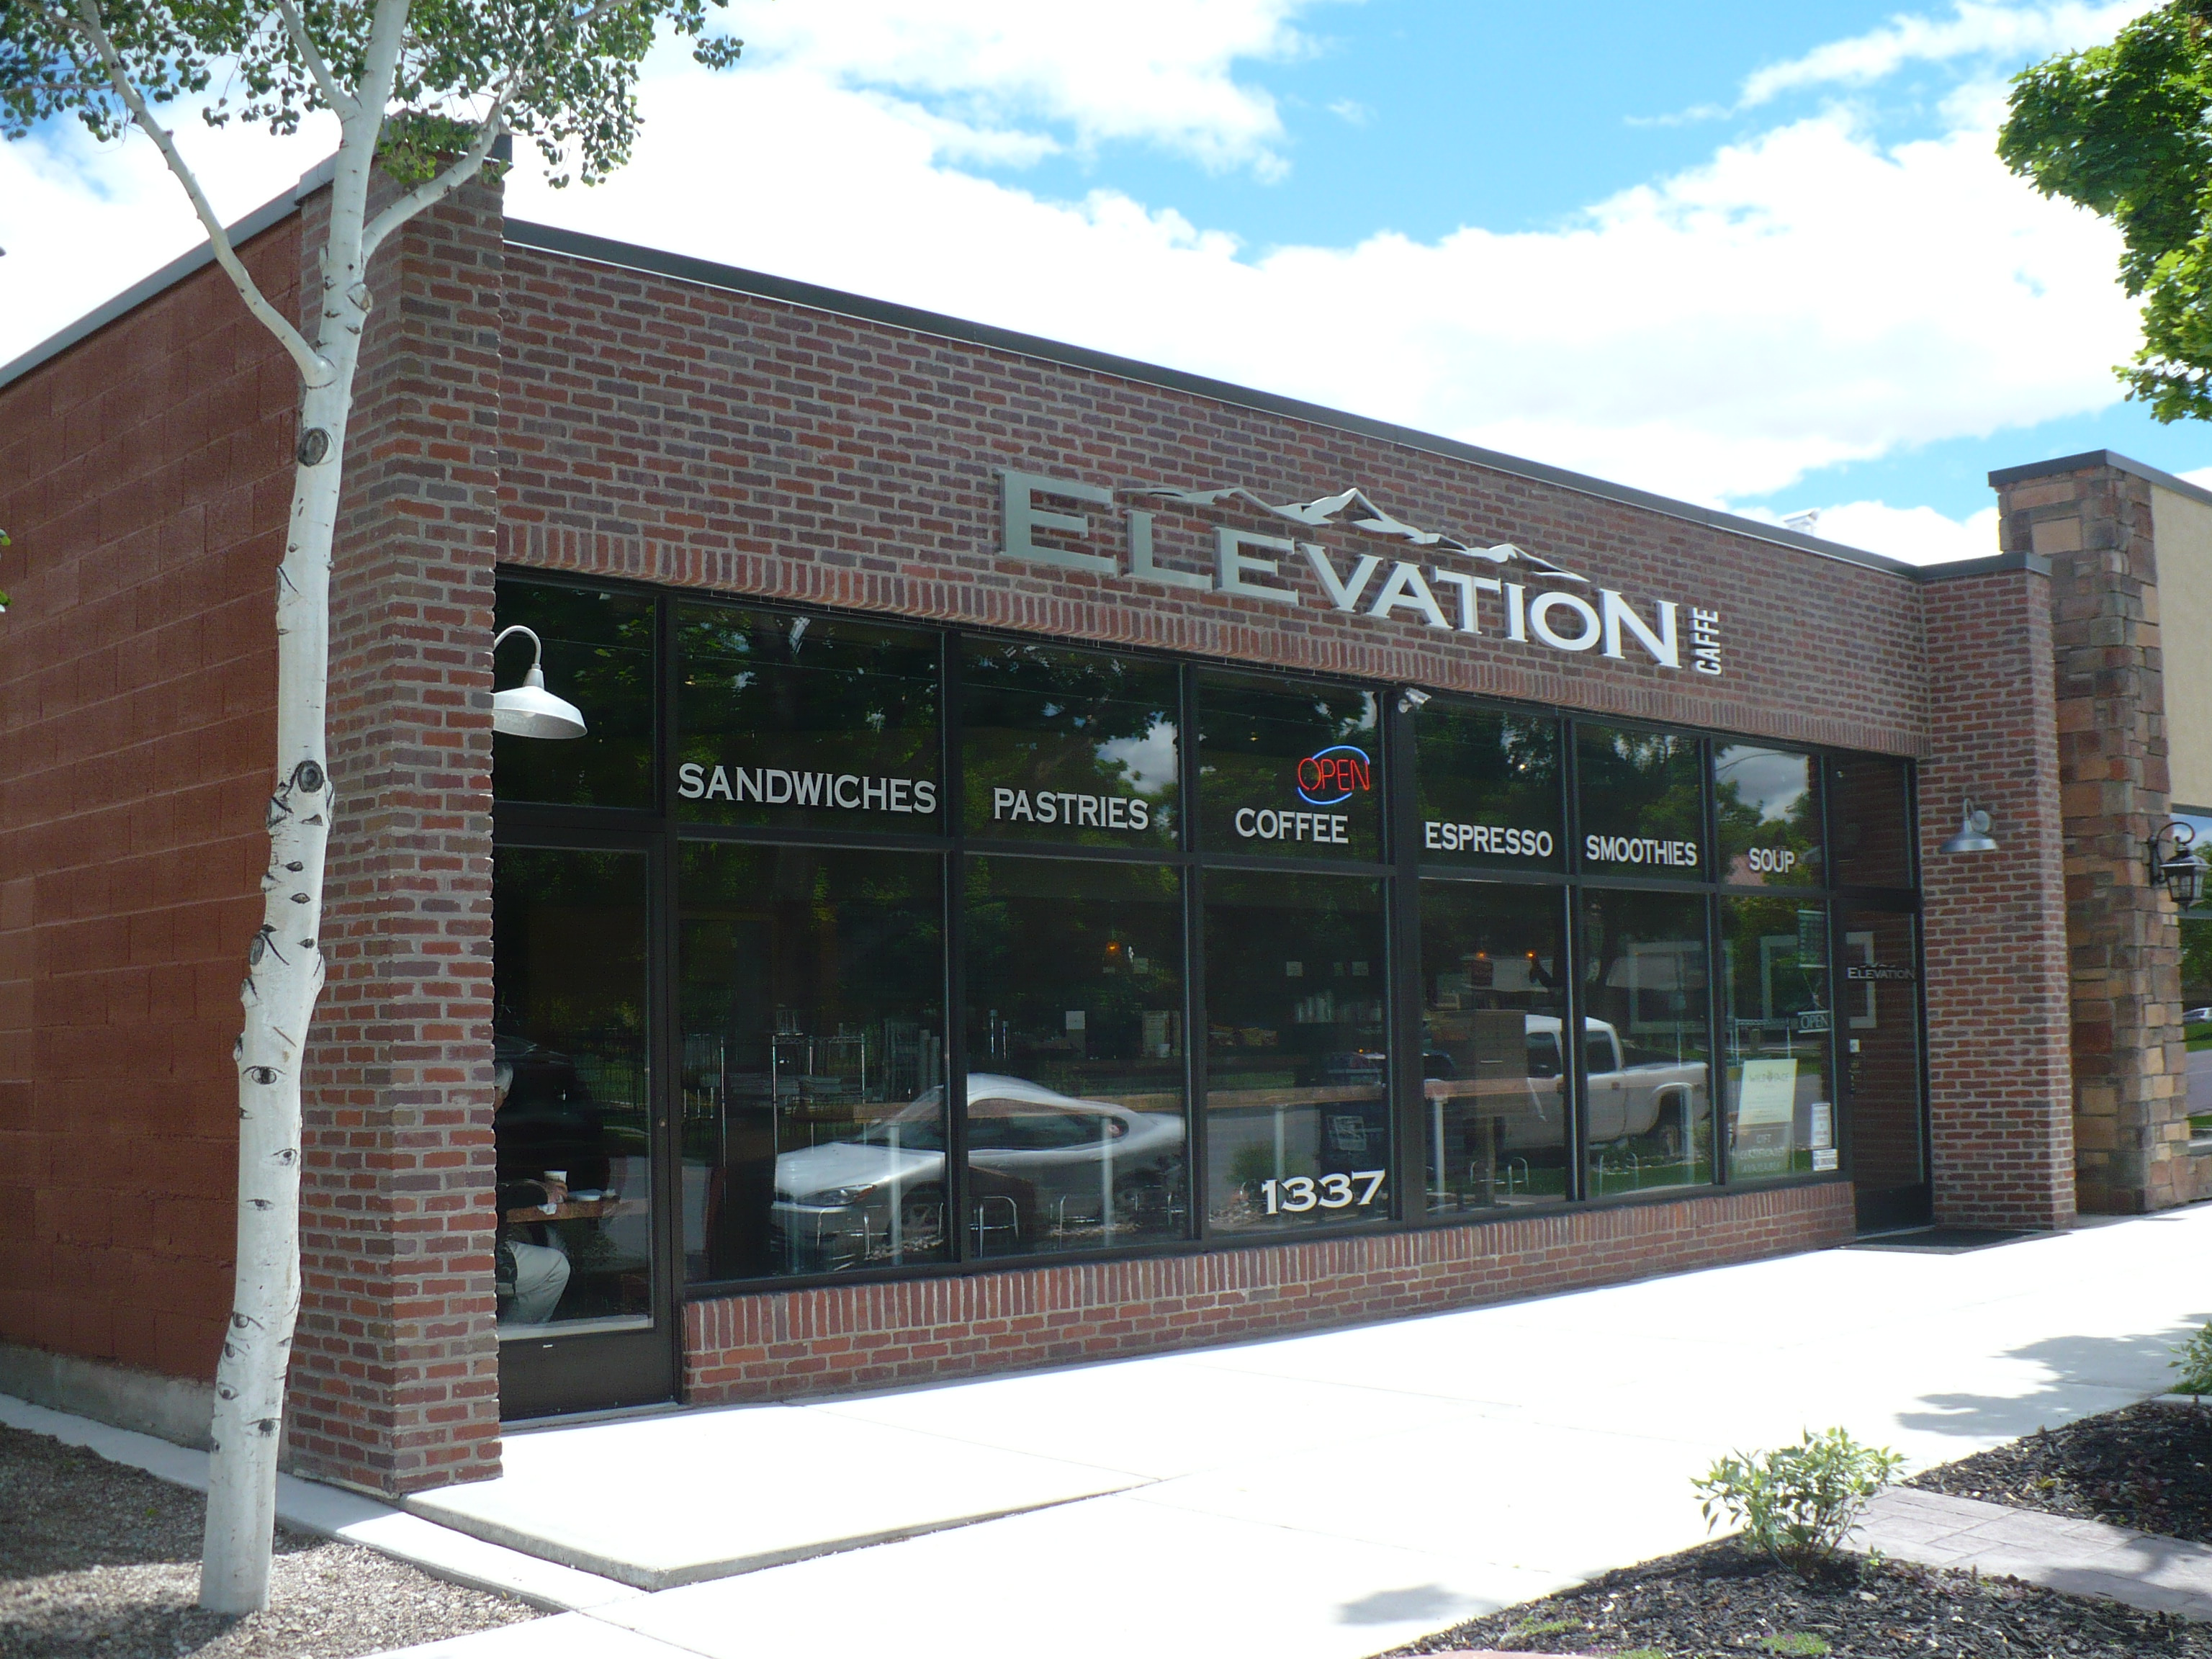 Elevation Cafe